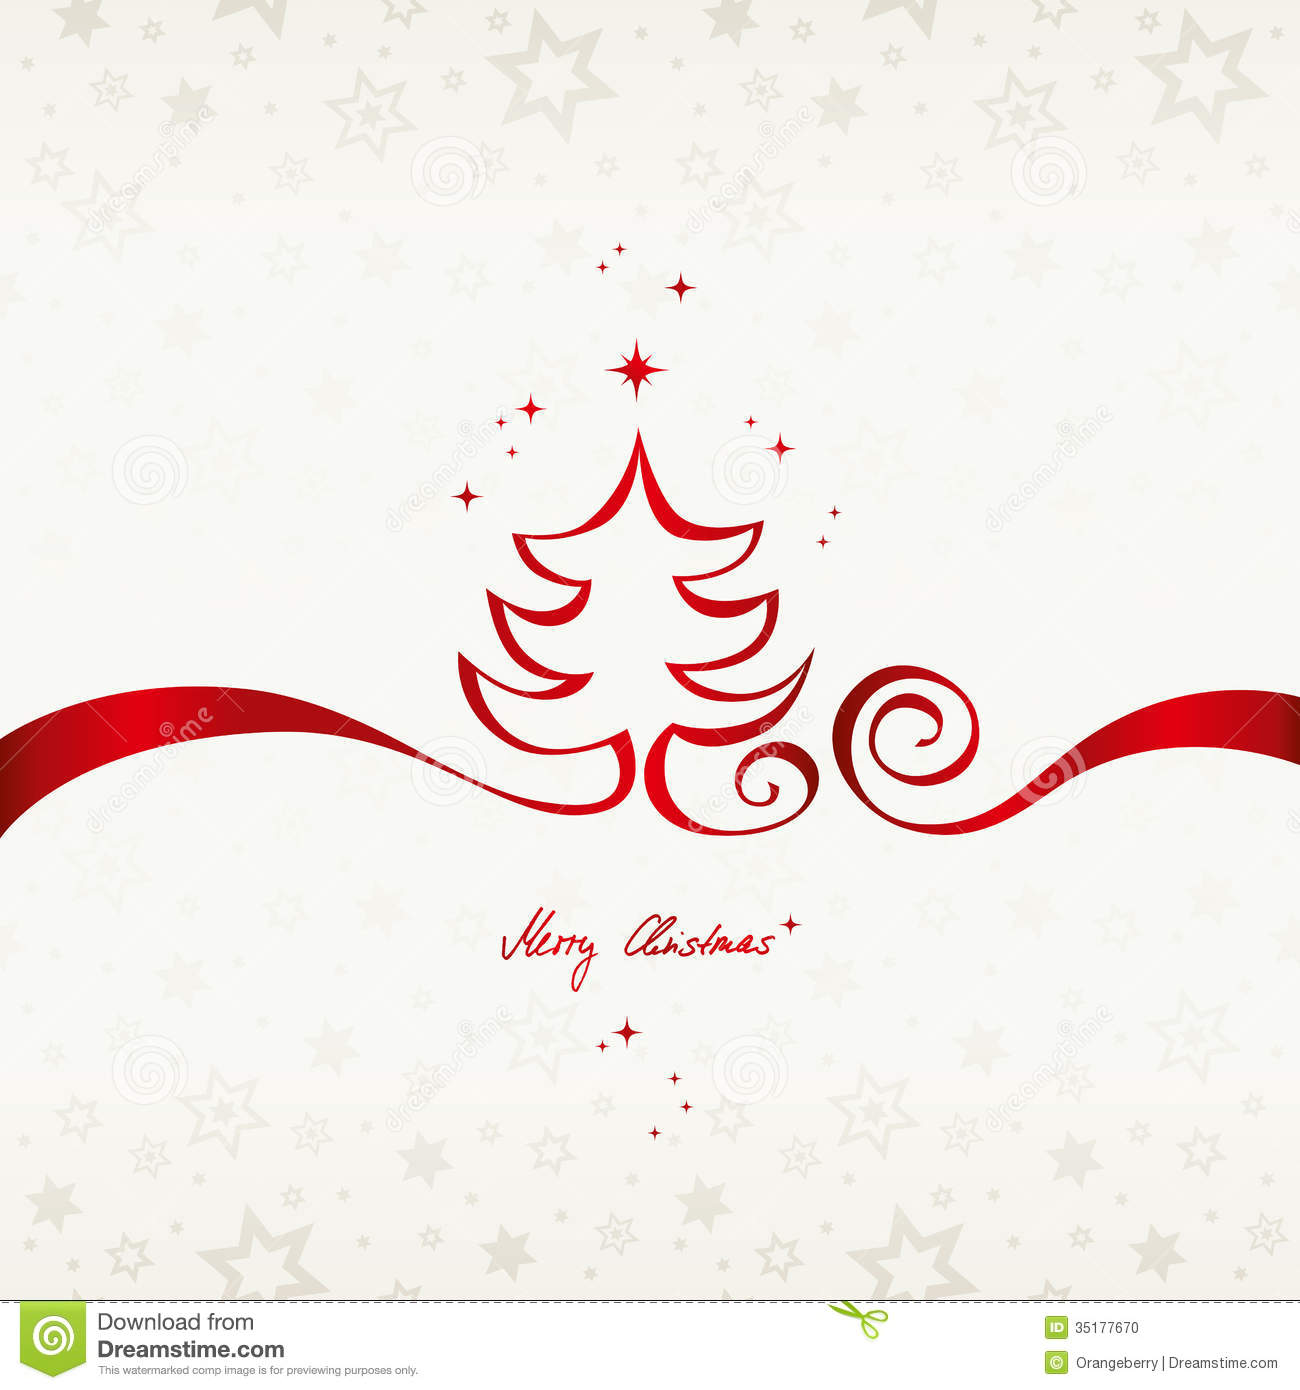 Christmas Card Free vector | 123Freevectors